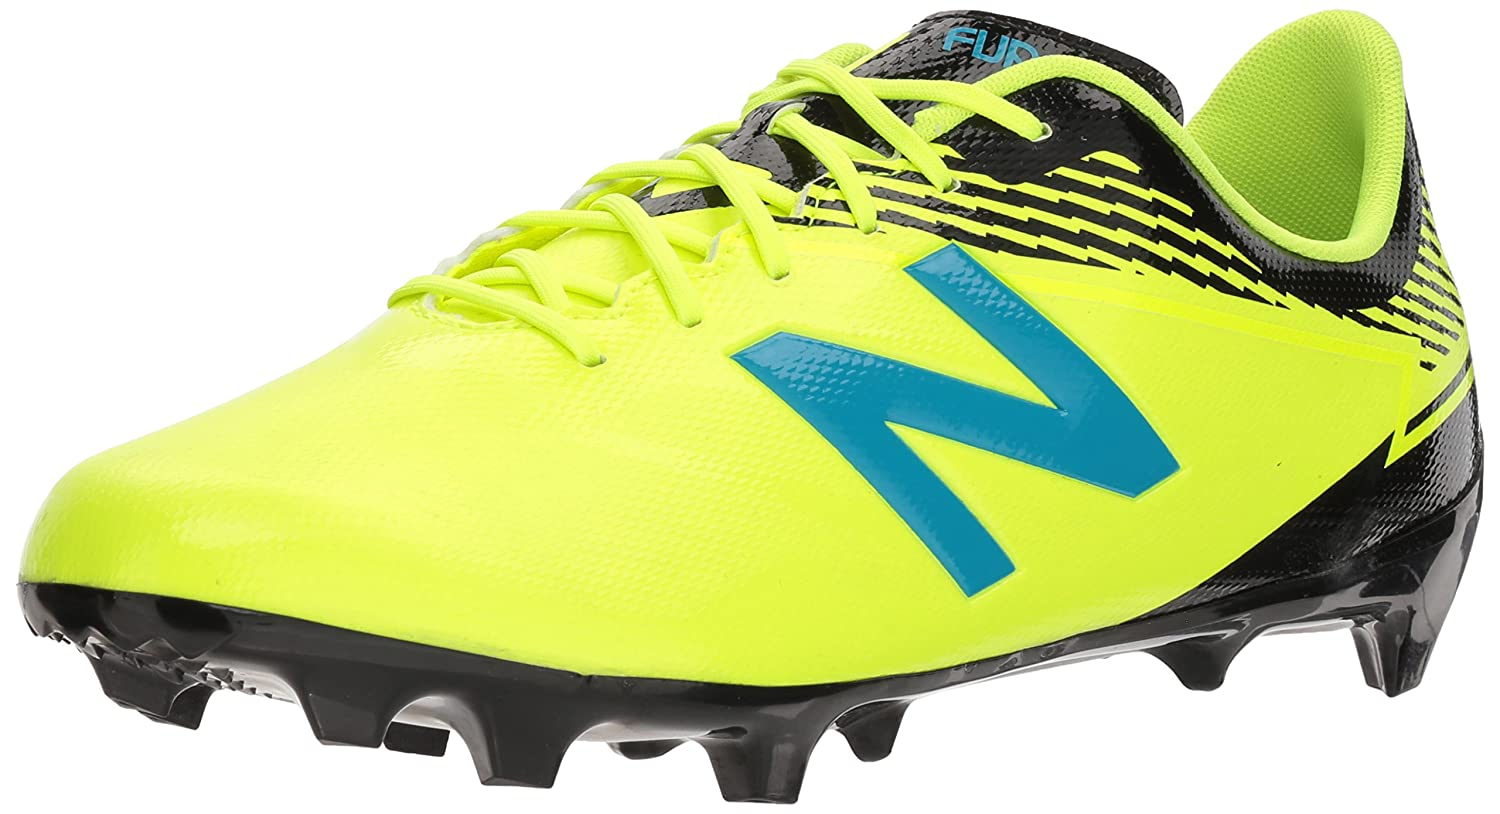 New Balance メンズ Furon 3.0 Dispatch FG B06XWVH6P6 9.5 D(M) US|Hi Lite/Maldives Hi Lite/Maldives 9.5 D(M) US